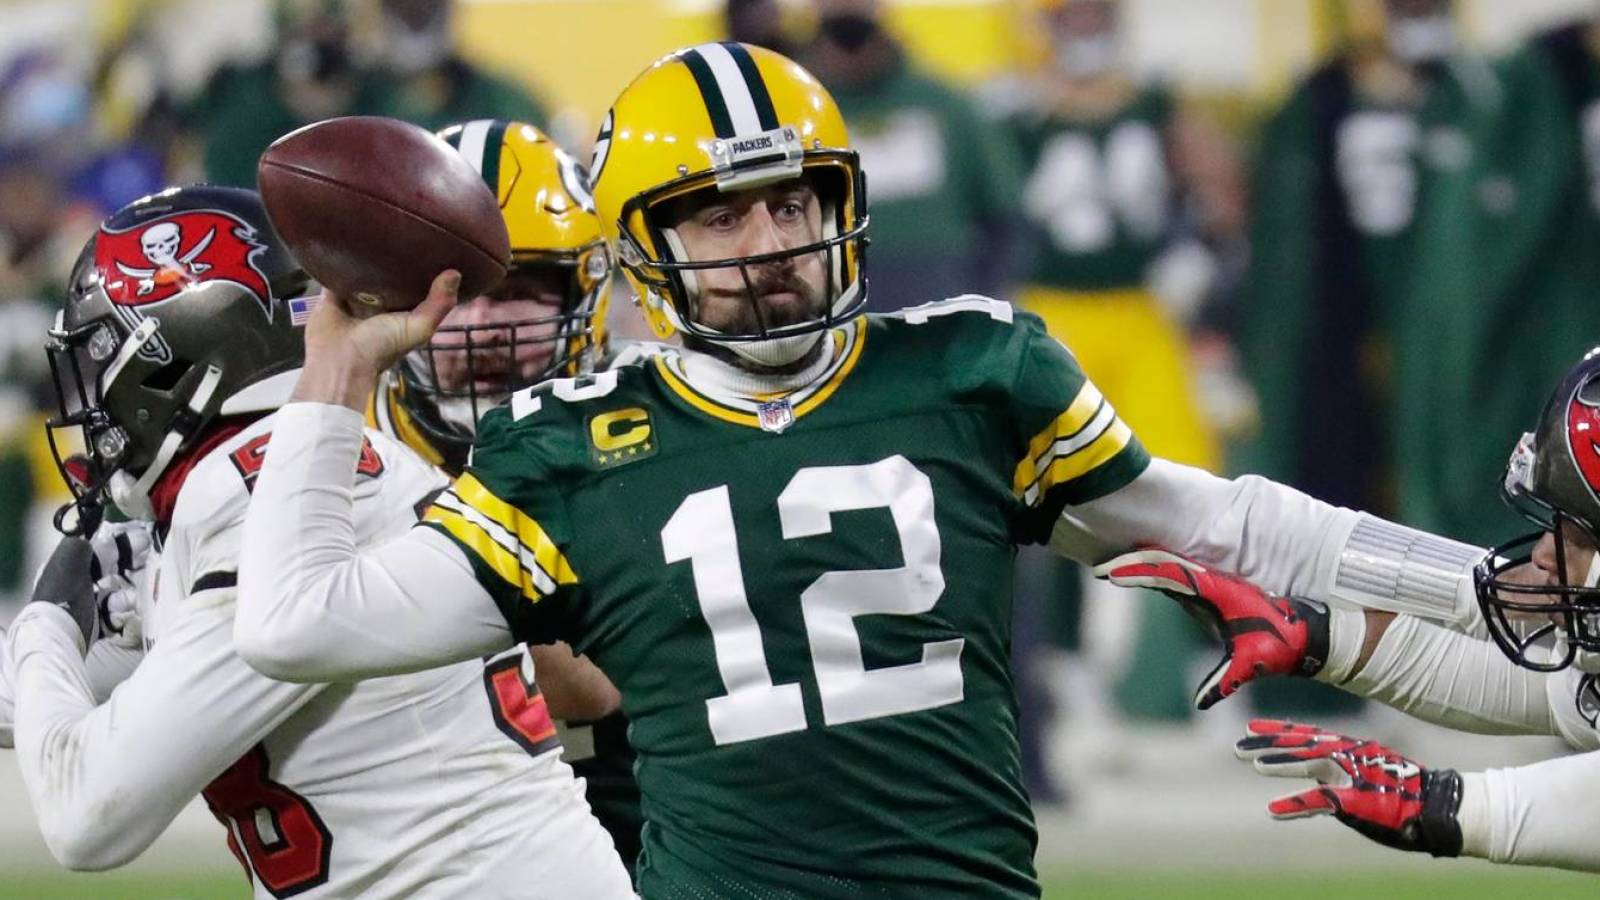 NFL teams reportedly monitoring Broncos 'very closely' for Aaron Rodgers trade - Yardbarker